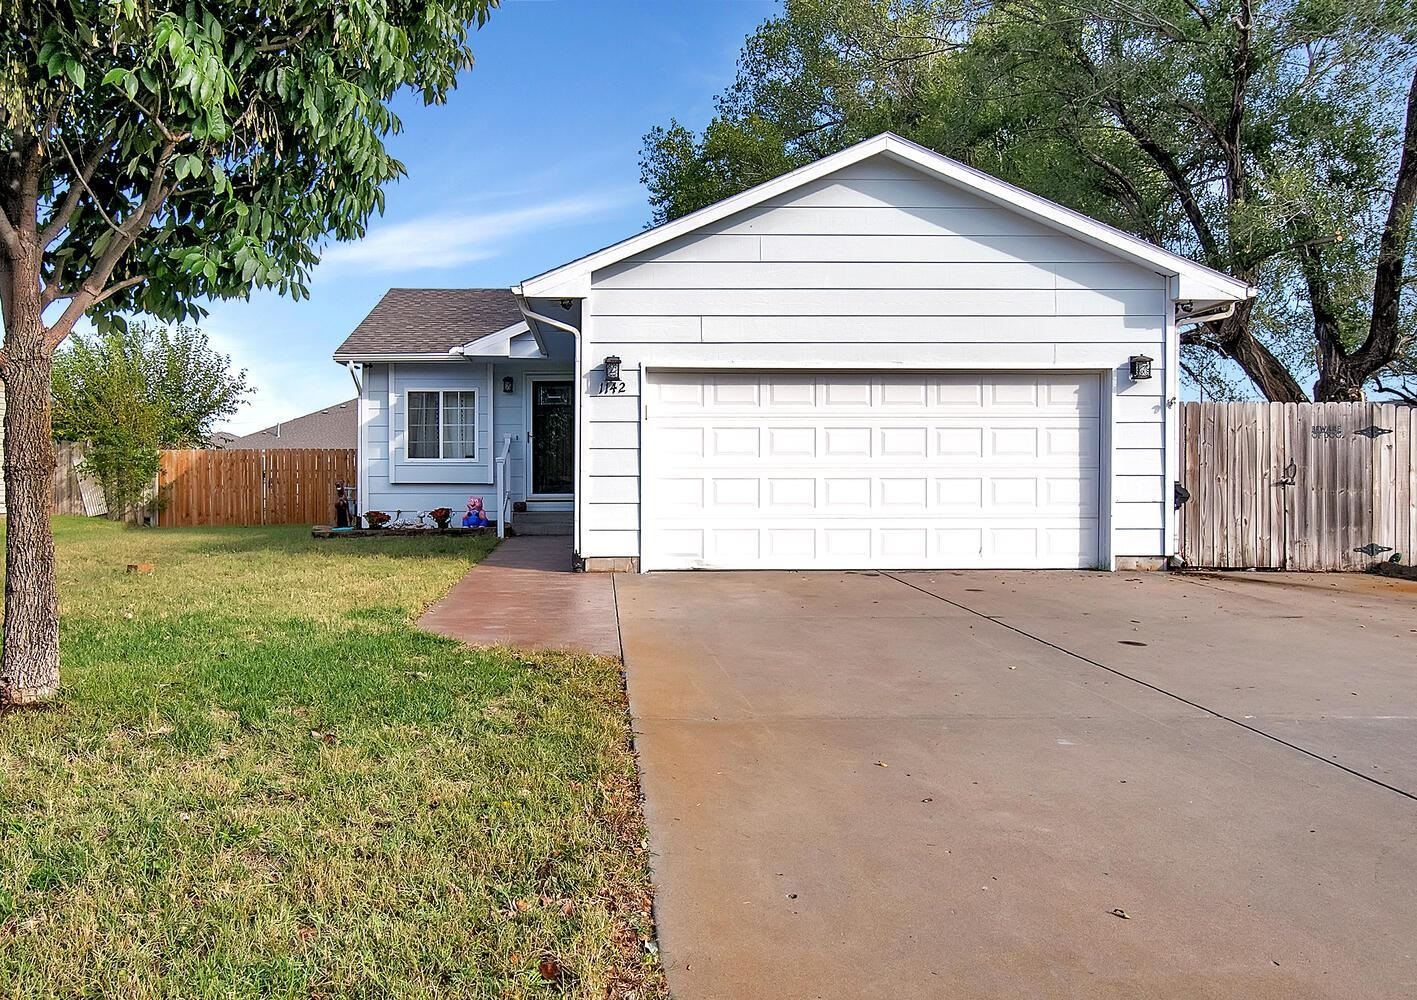 Welcome Home to this 3 bedroom 2 bath 2 car garage South Wichita home. It features updated kitchen a